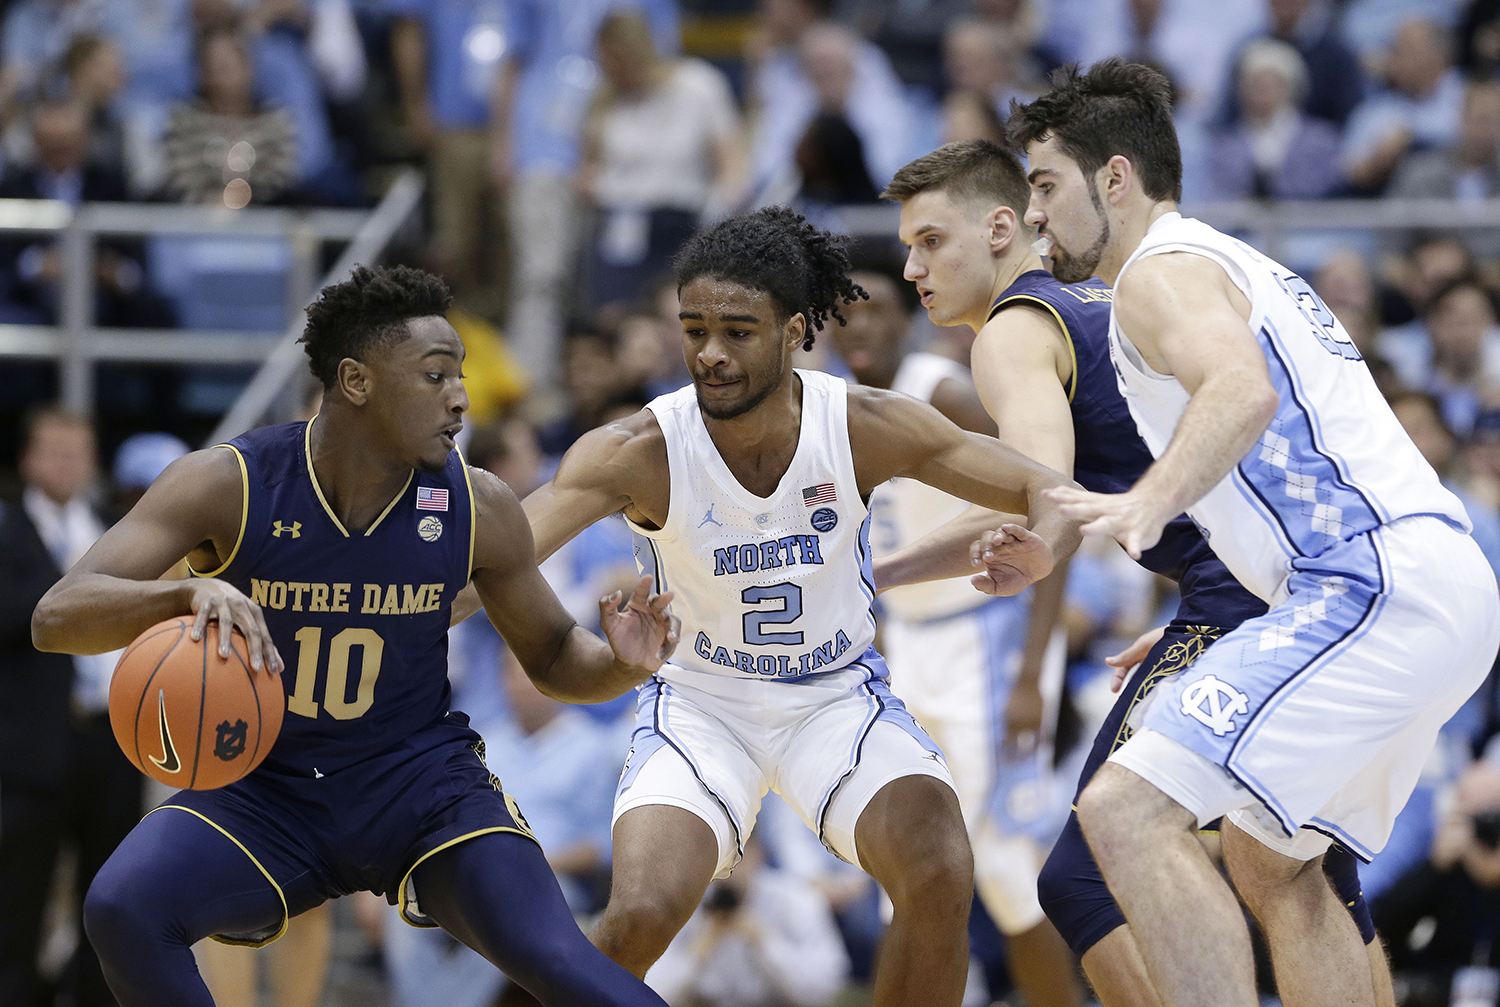 "<div class=""meta image-caption""><div class=""origin-logo origin-image ap""><span>AP</span></div><span class=""caption-text"">Notre Dame's TJ Gibbs (10) dribbles the ball while North Carolina's Coby White (2) and Luke Maye, right, defend. (Gerry Broome)</span></div>"